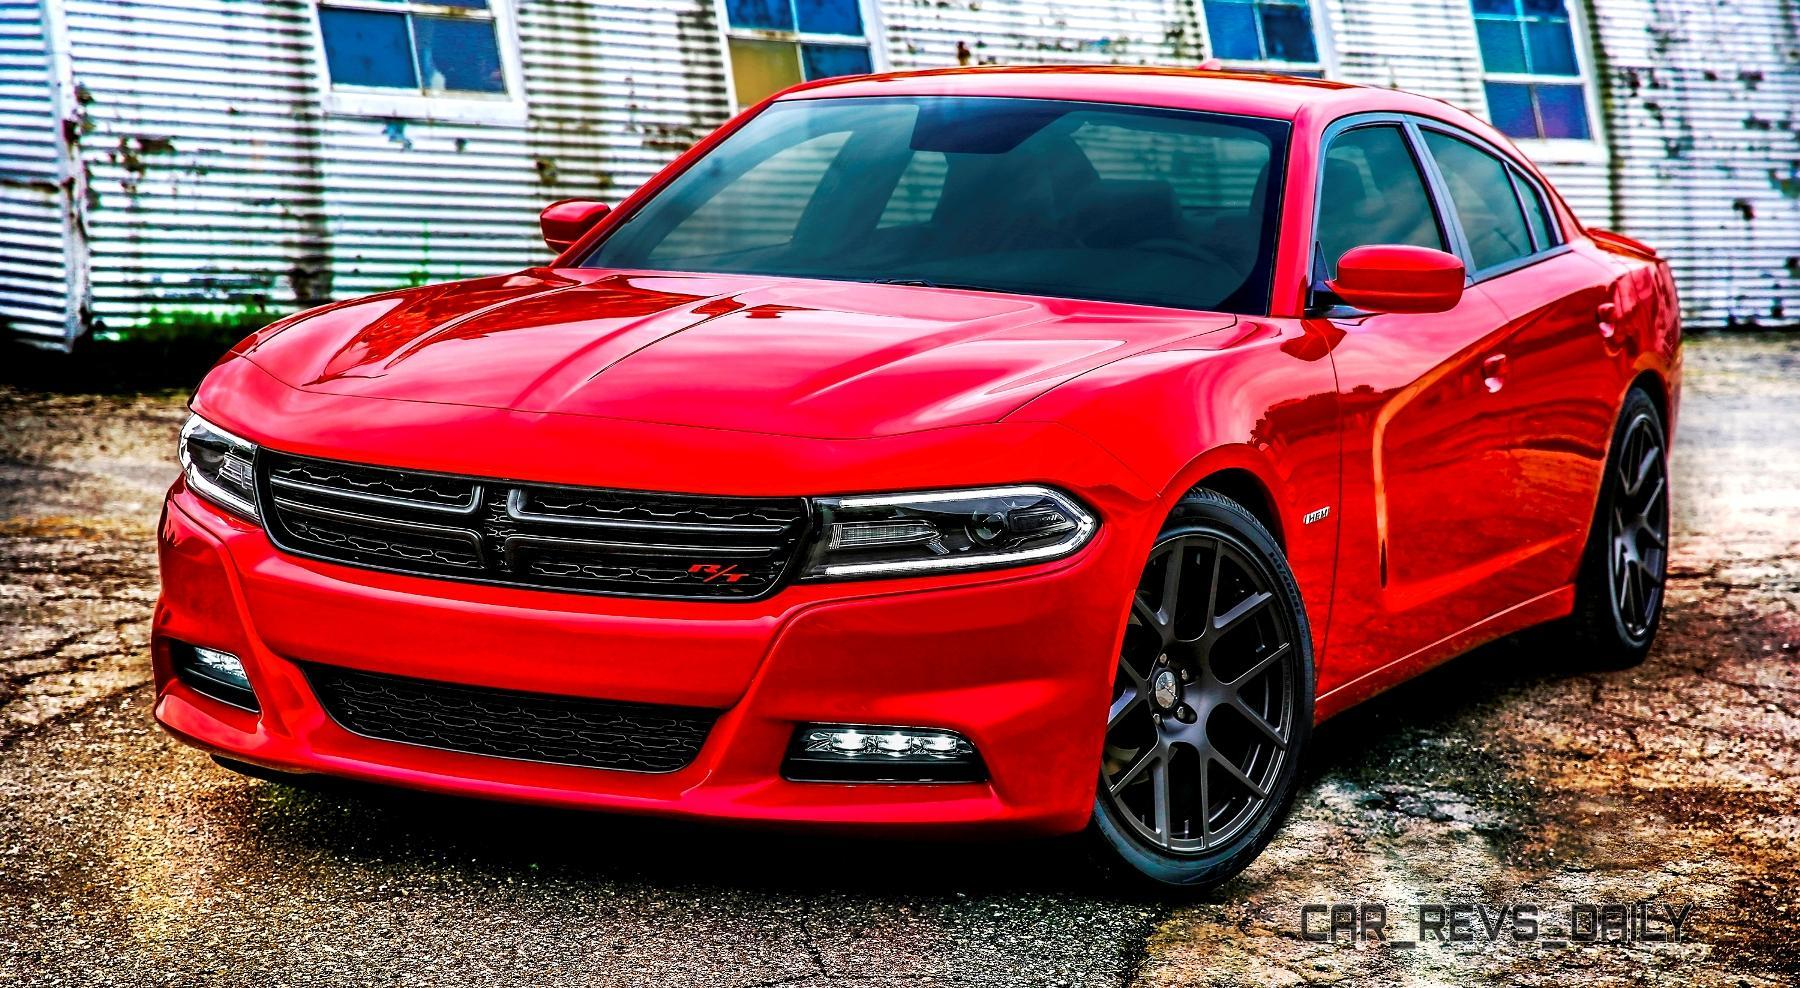 2015 dodge charger r/t with painted front bumper is less